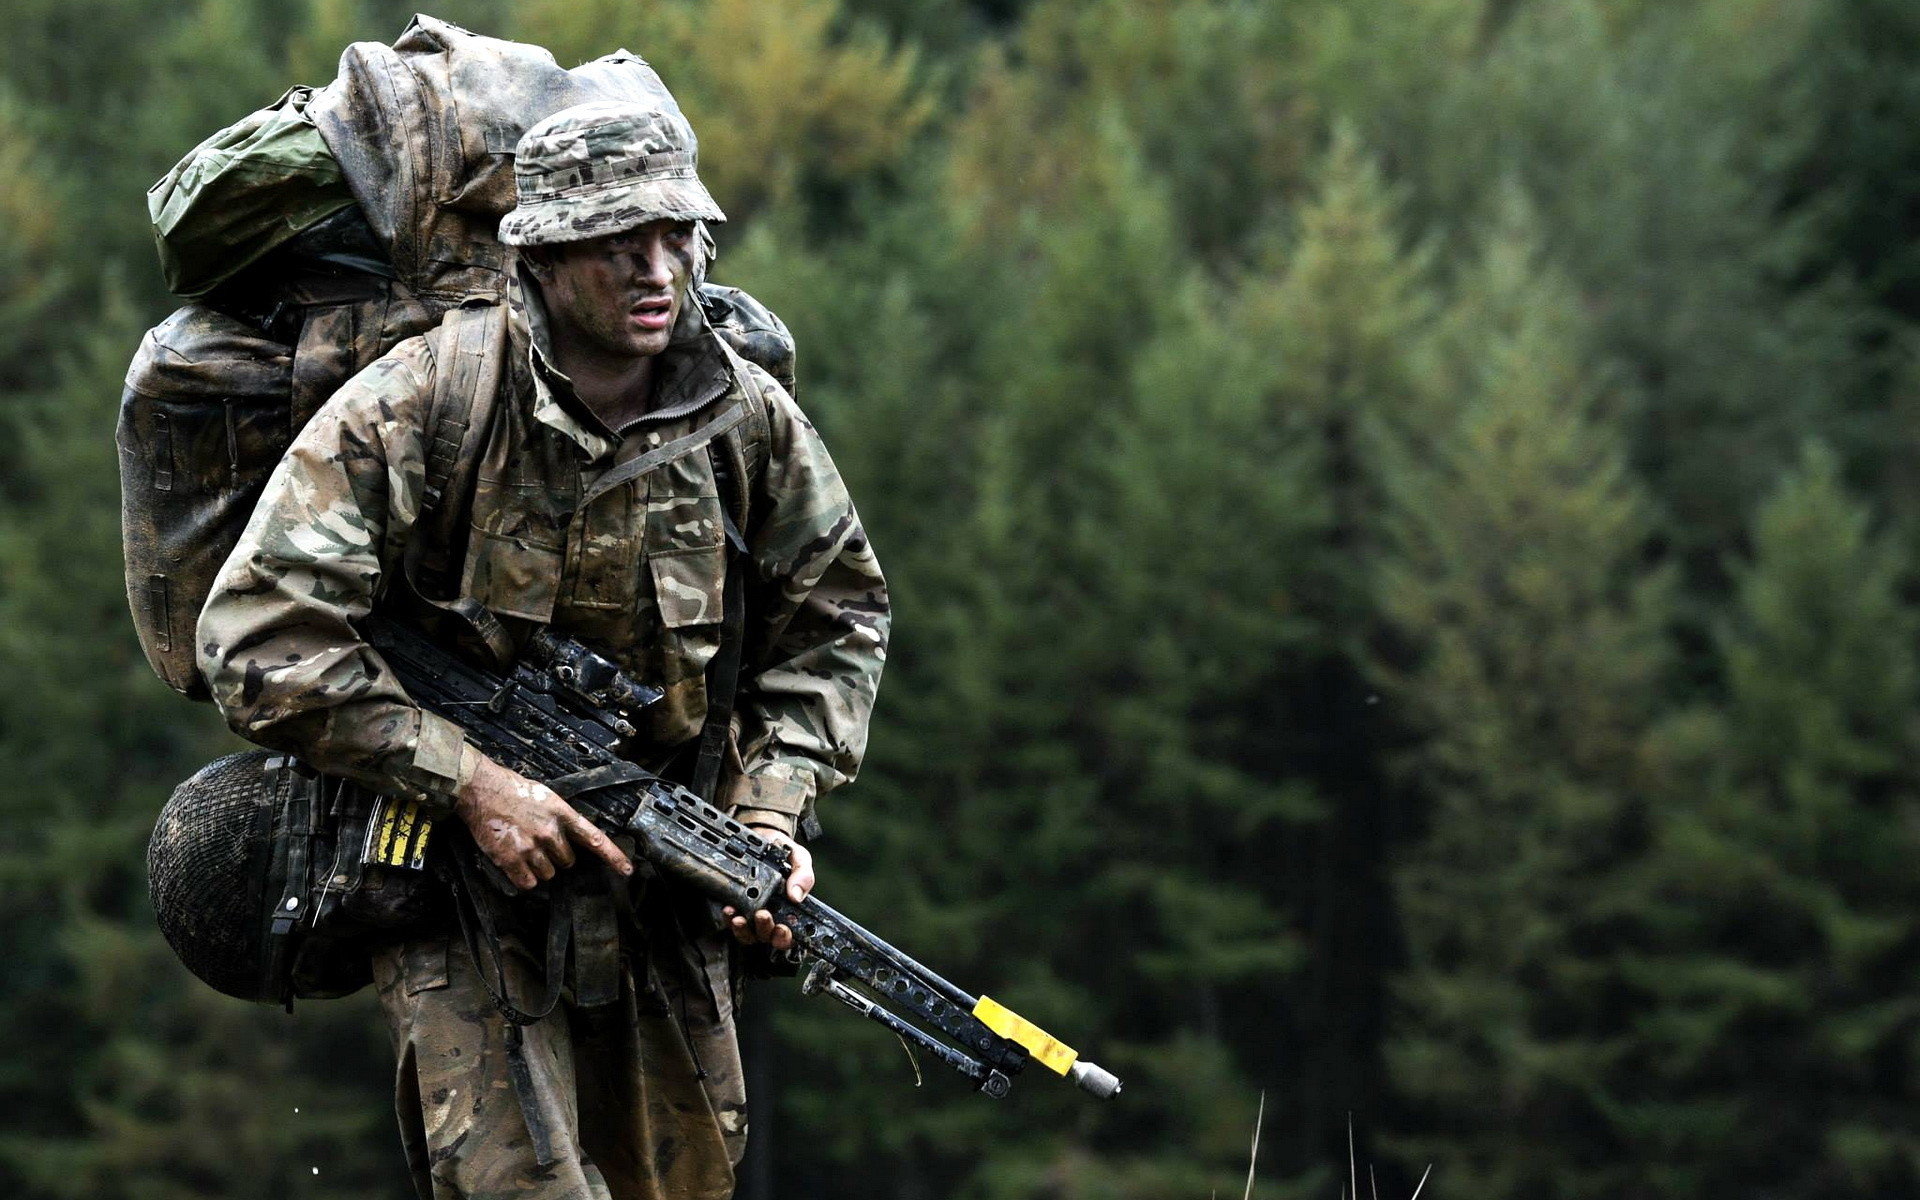 Soldier army wallpapers for free download about wallpapers.